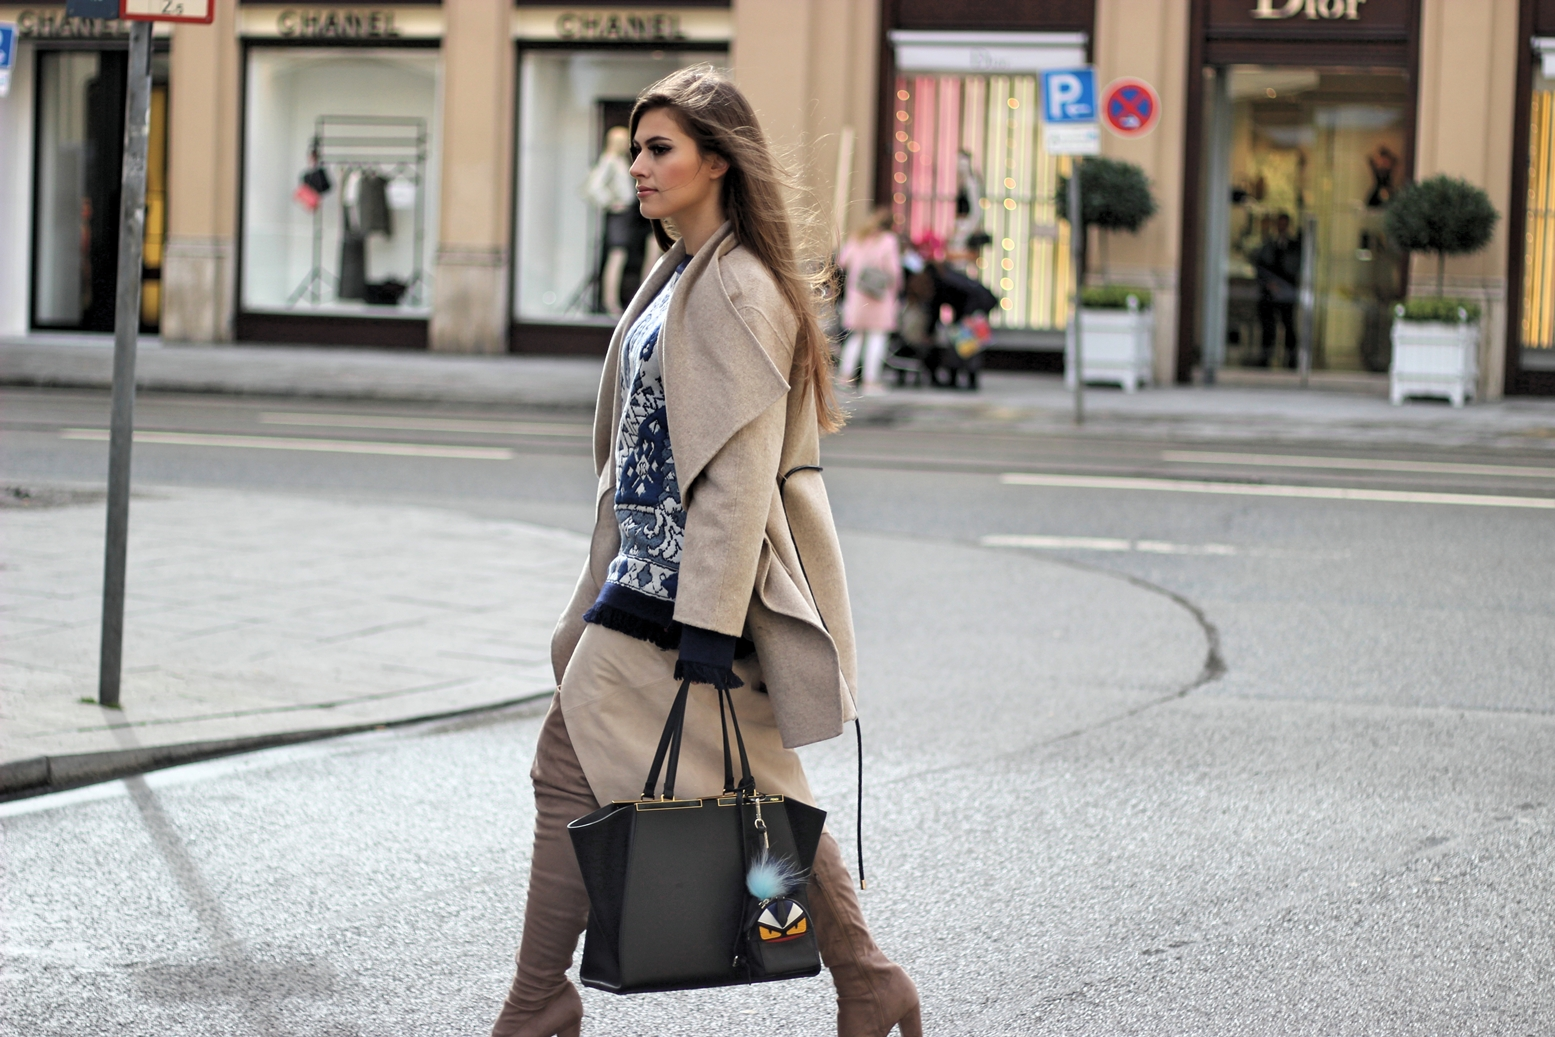 streetstyle-munich-zara-coat-outfit-fendi-bag-bagcharm-monster-fashion